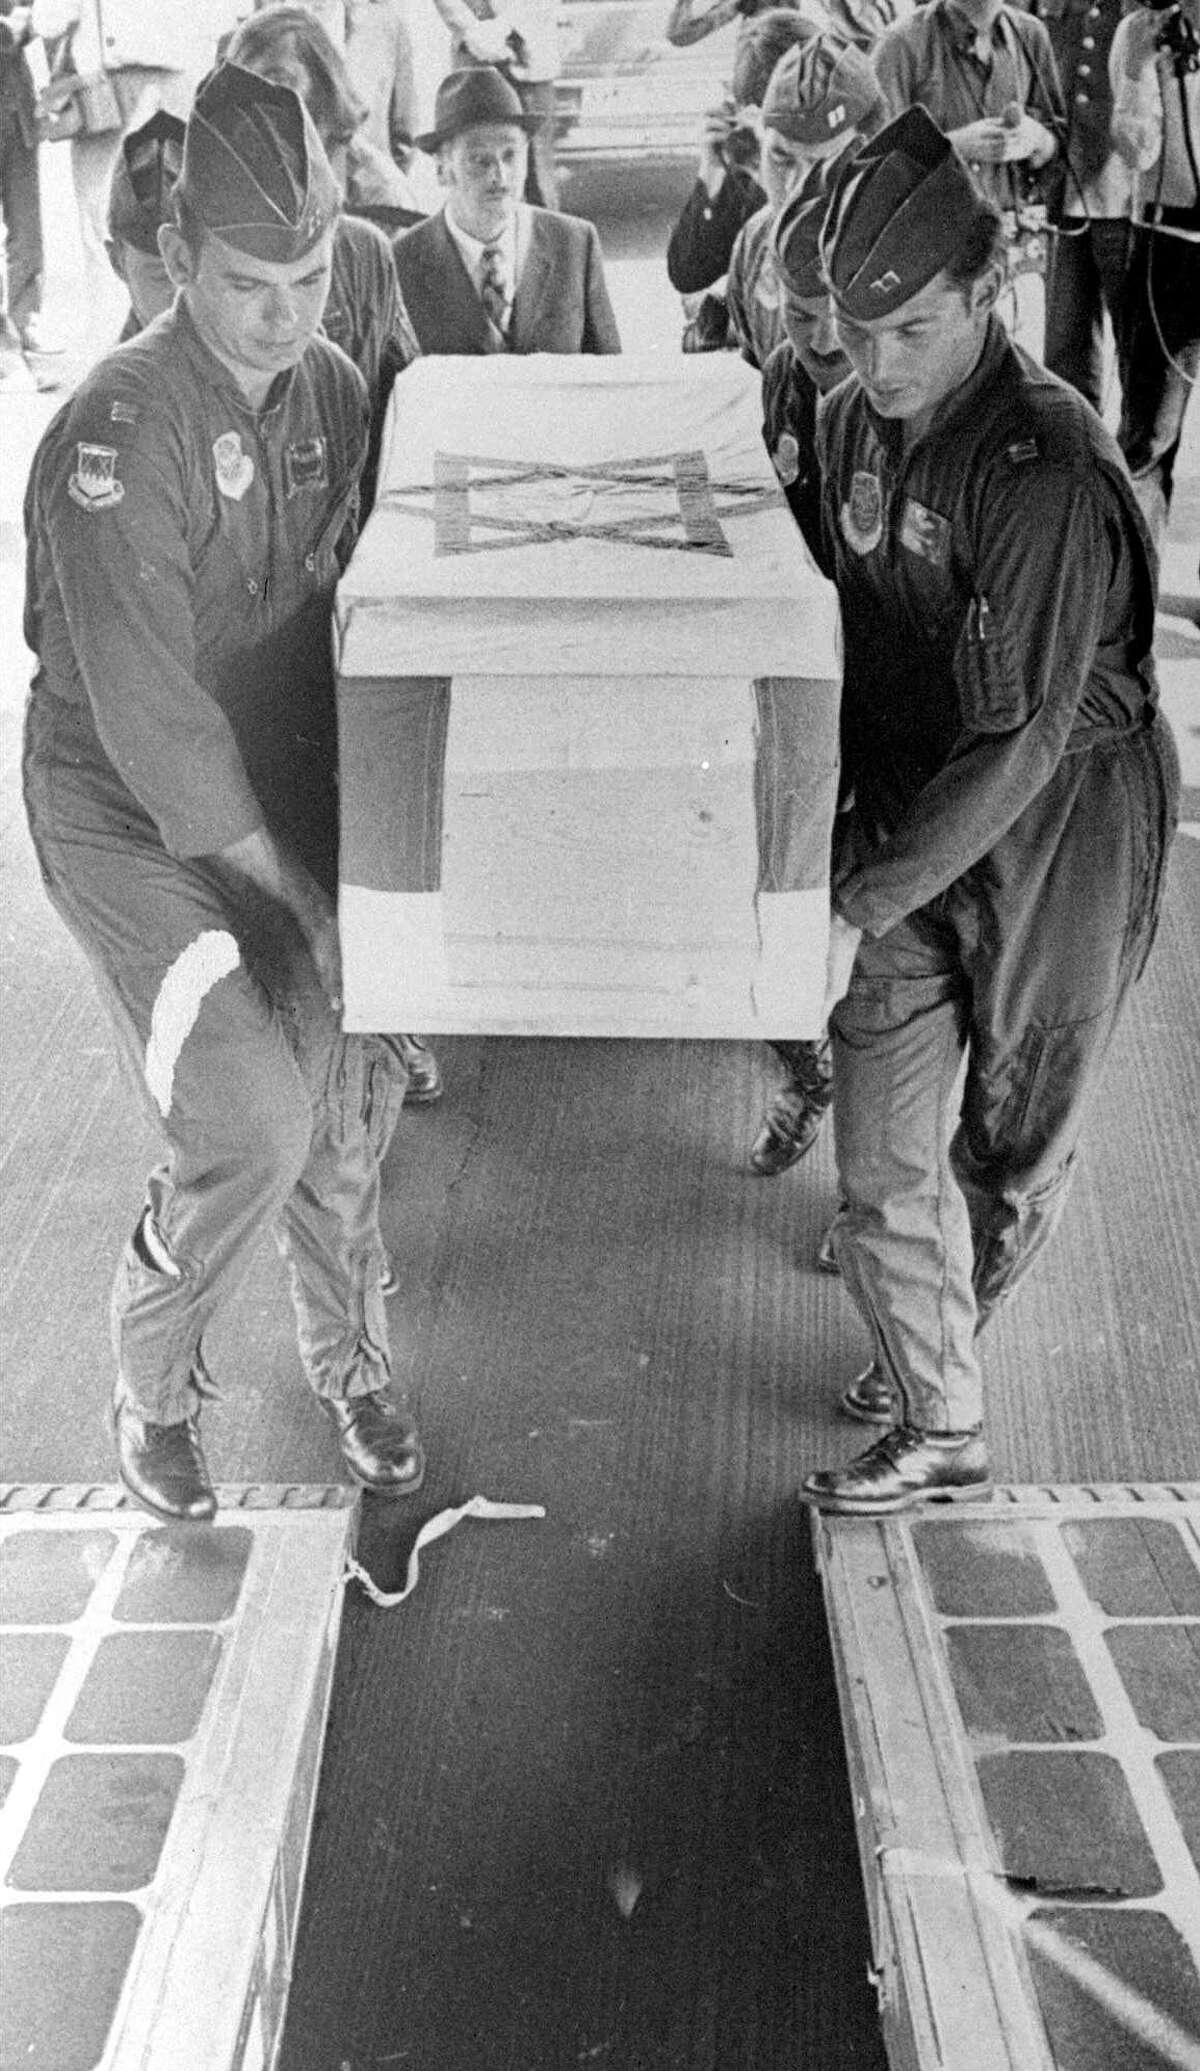 American Air Force officers carry the coffin of Israeli Olympic weightlifter David Berger, one of the hostages murdered by terrorists at the 1972 Olympics in Munich, at a West German Air Force base, west of Munich, Germany, in this Sept. 7, 1972, file photo.